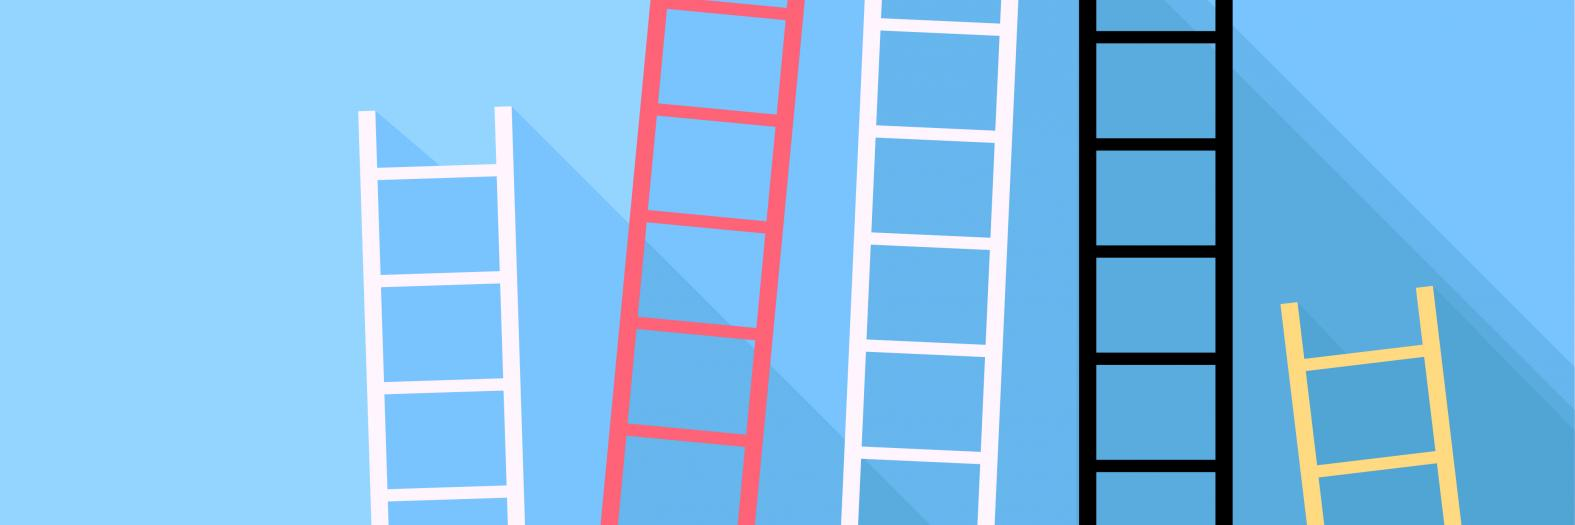 Colorful ladders in front of blue backgroun